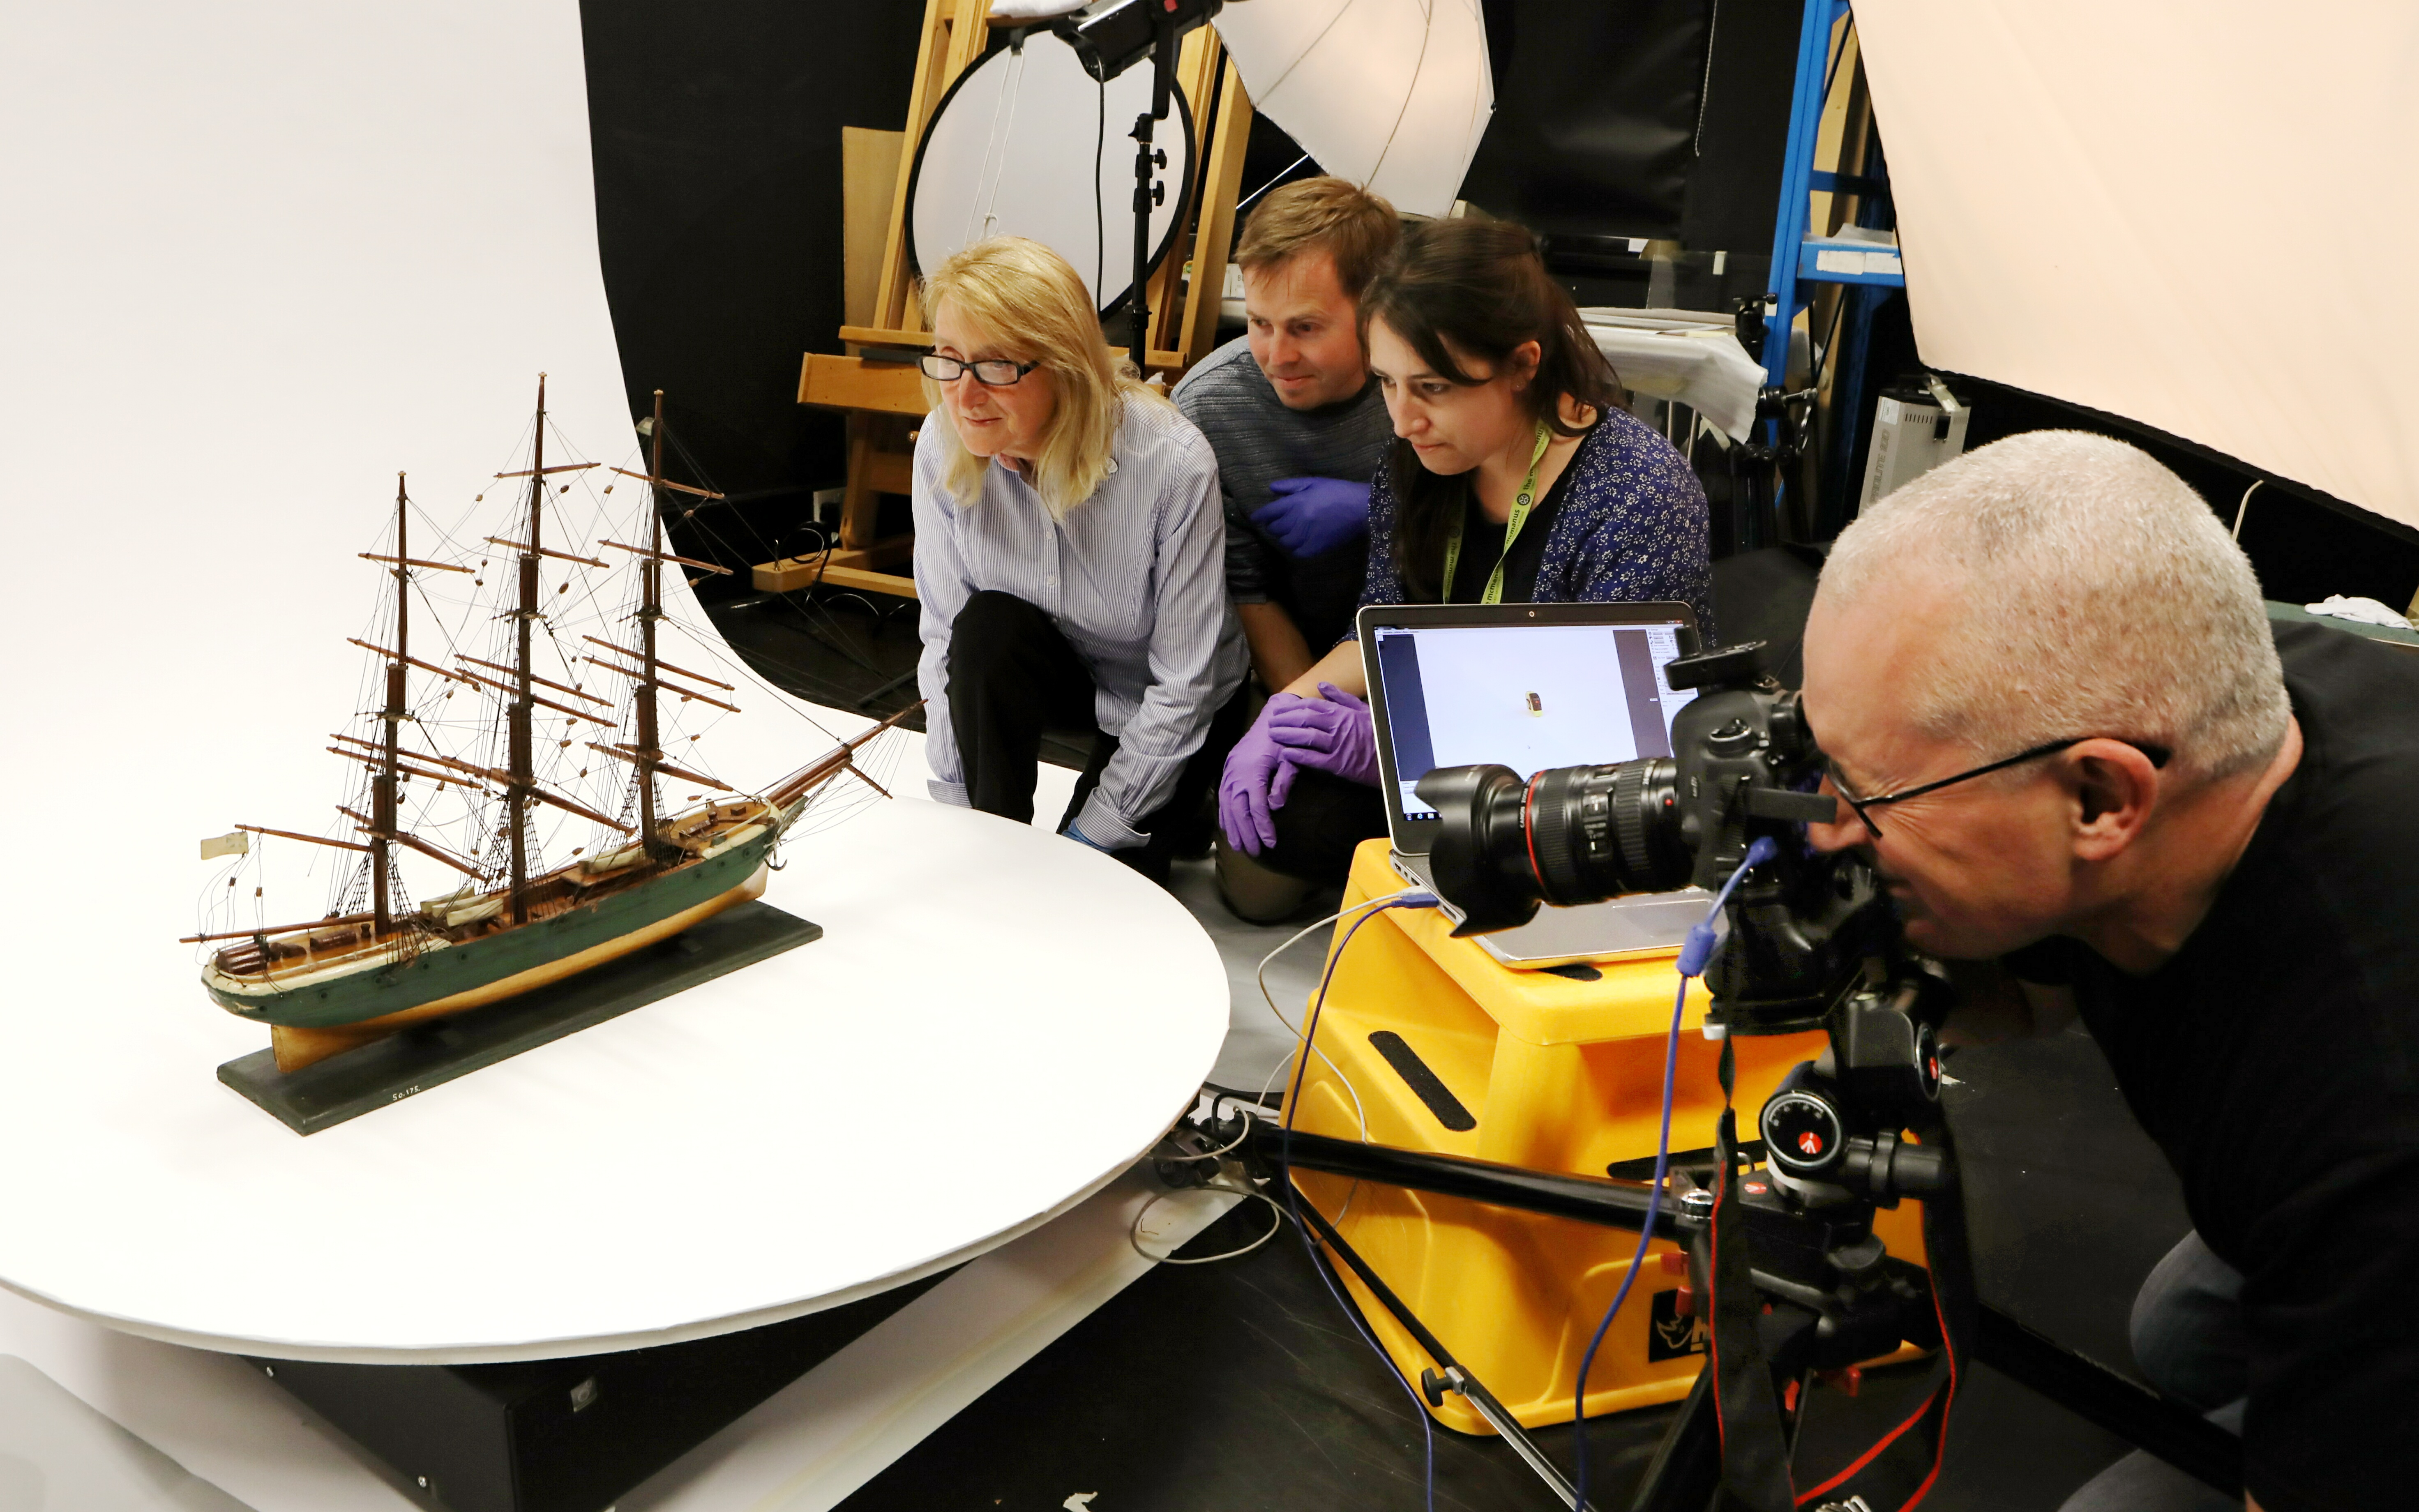 Staff work on capturing images of a three-masted ship — one of 139 in the collection